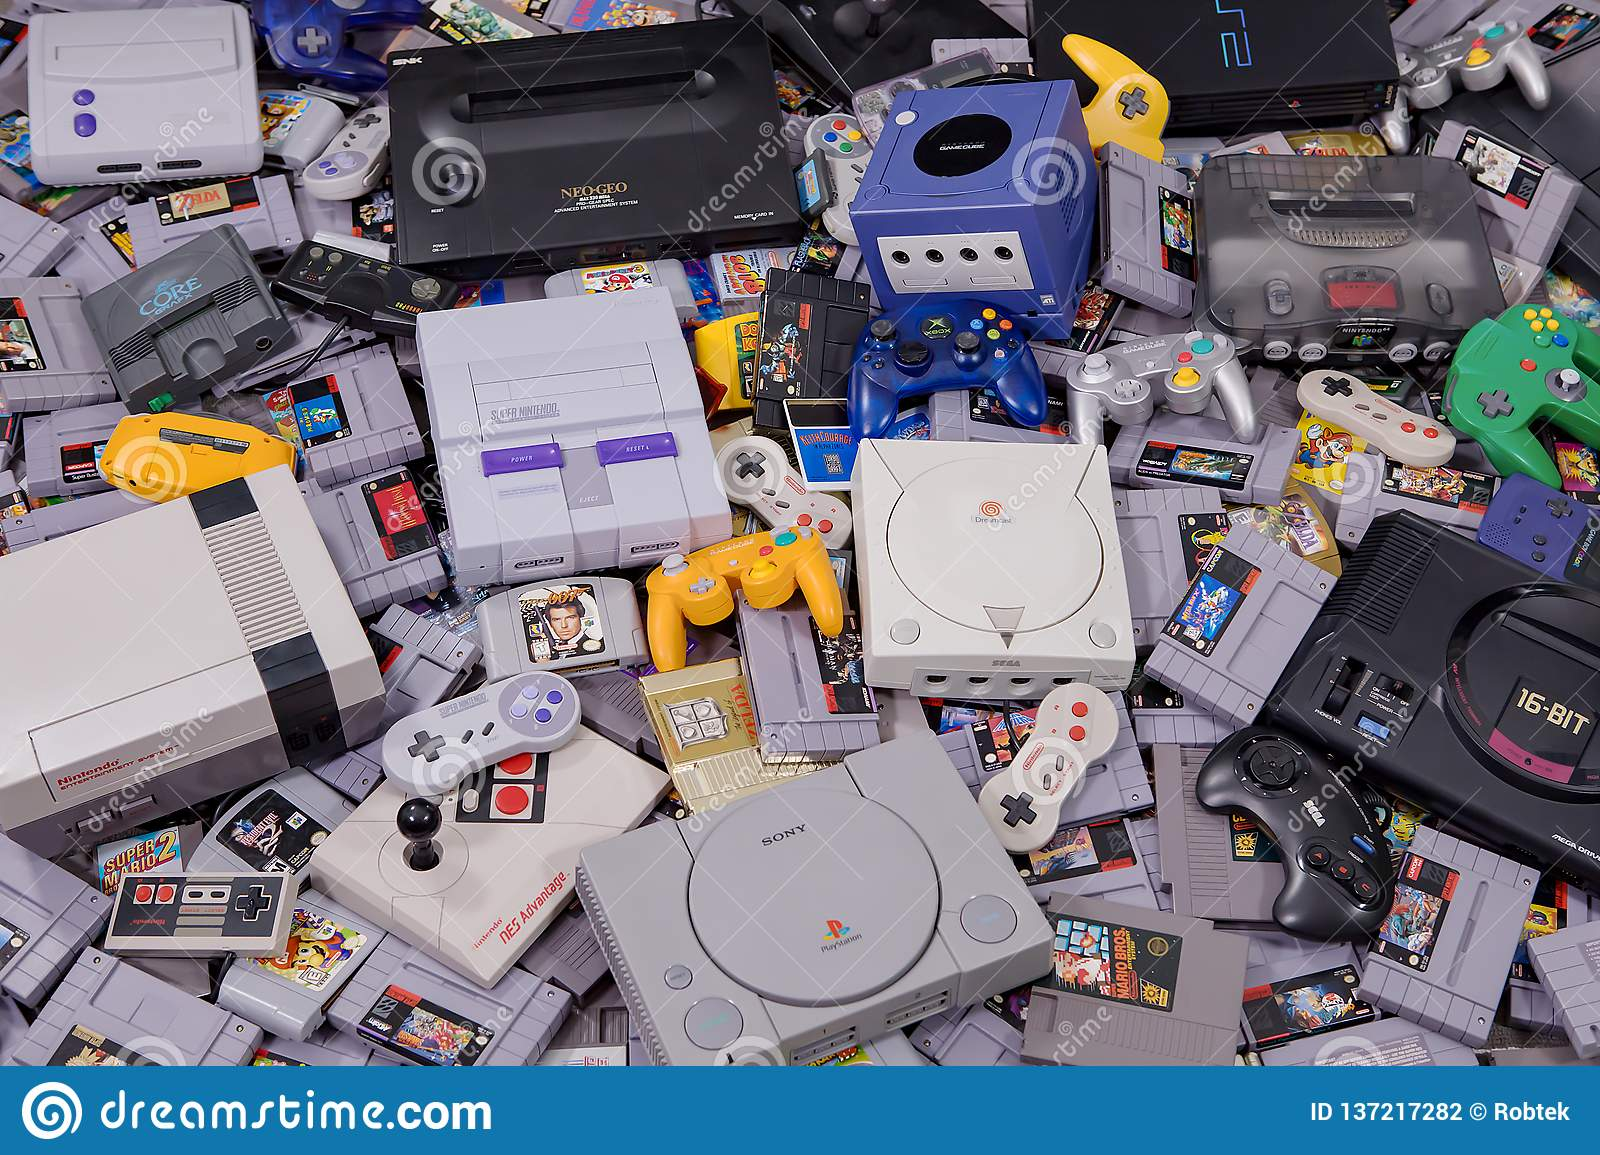 Classic Retro Video Games, Controllers and Systems